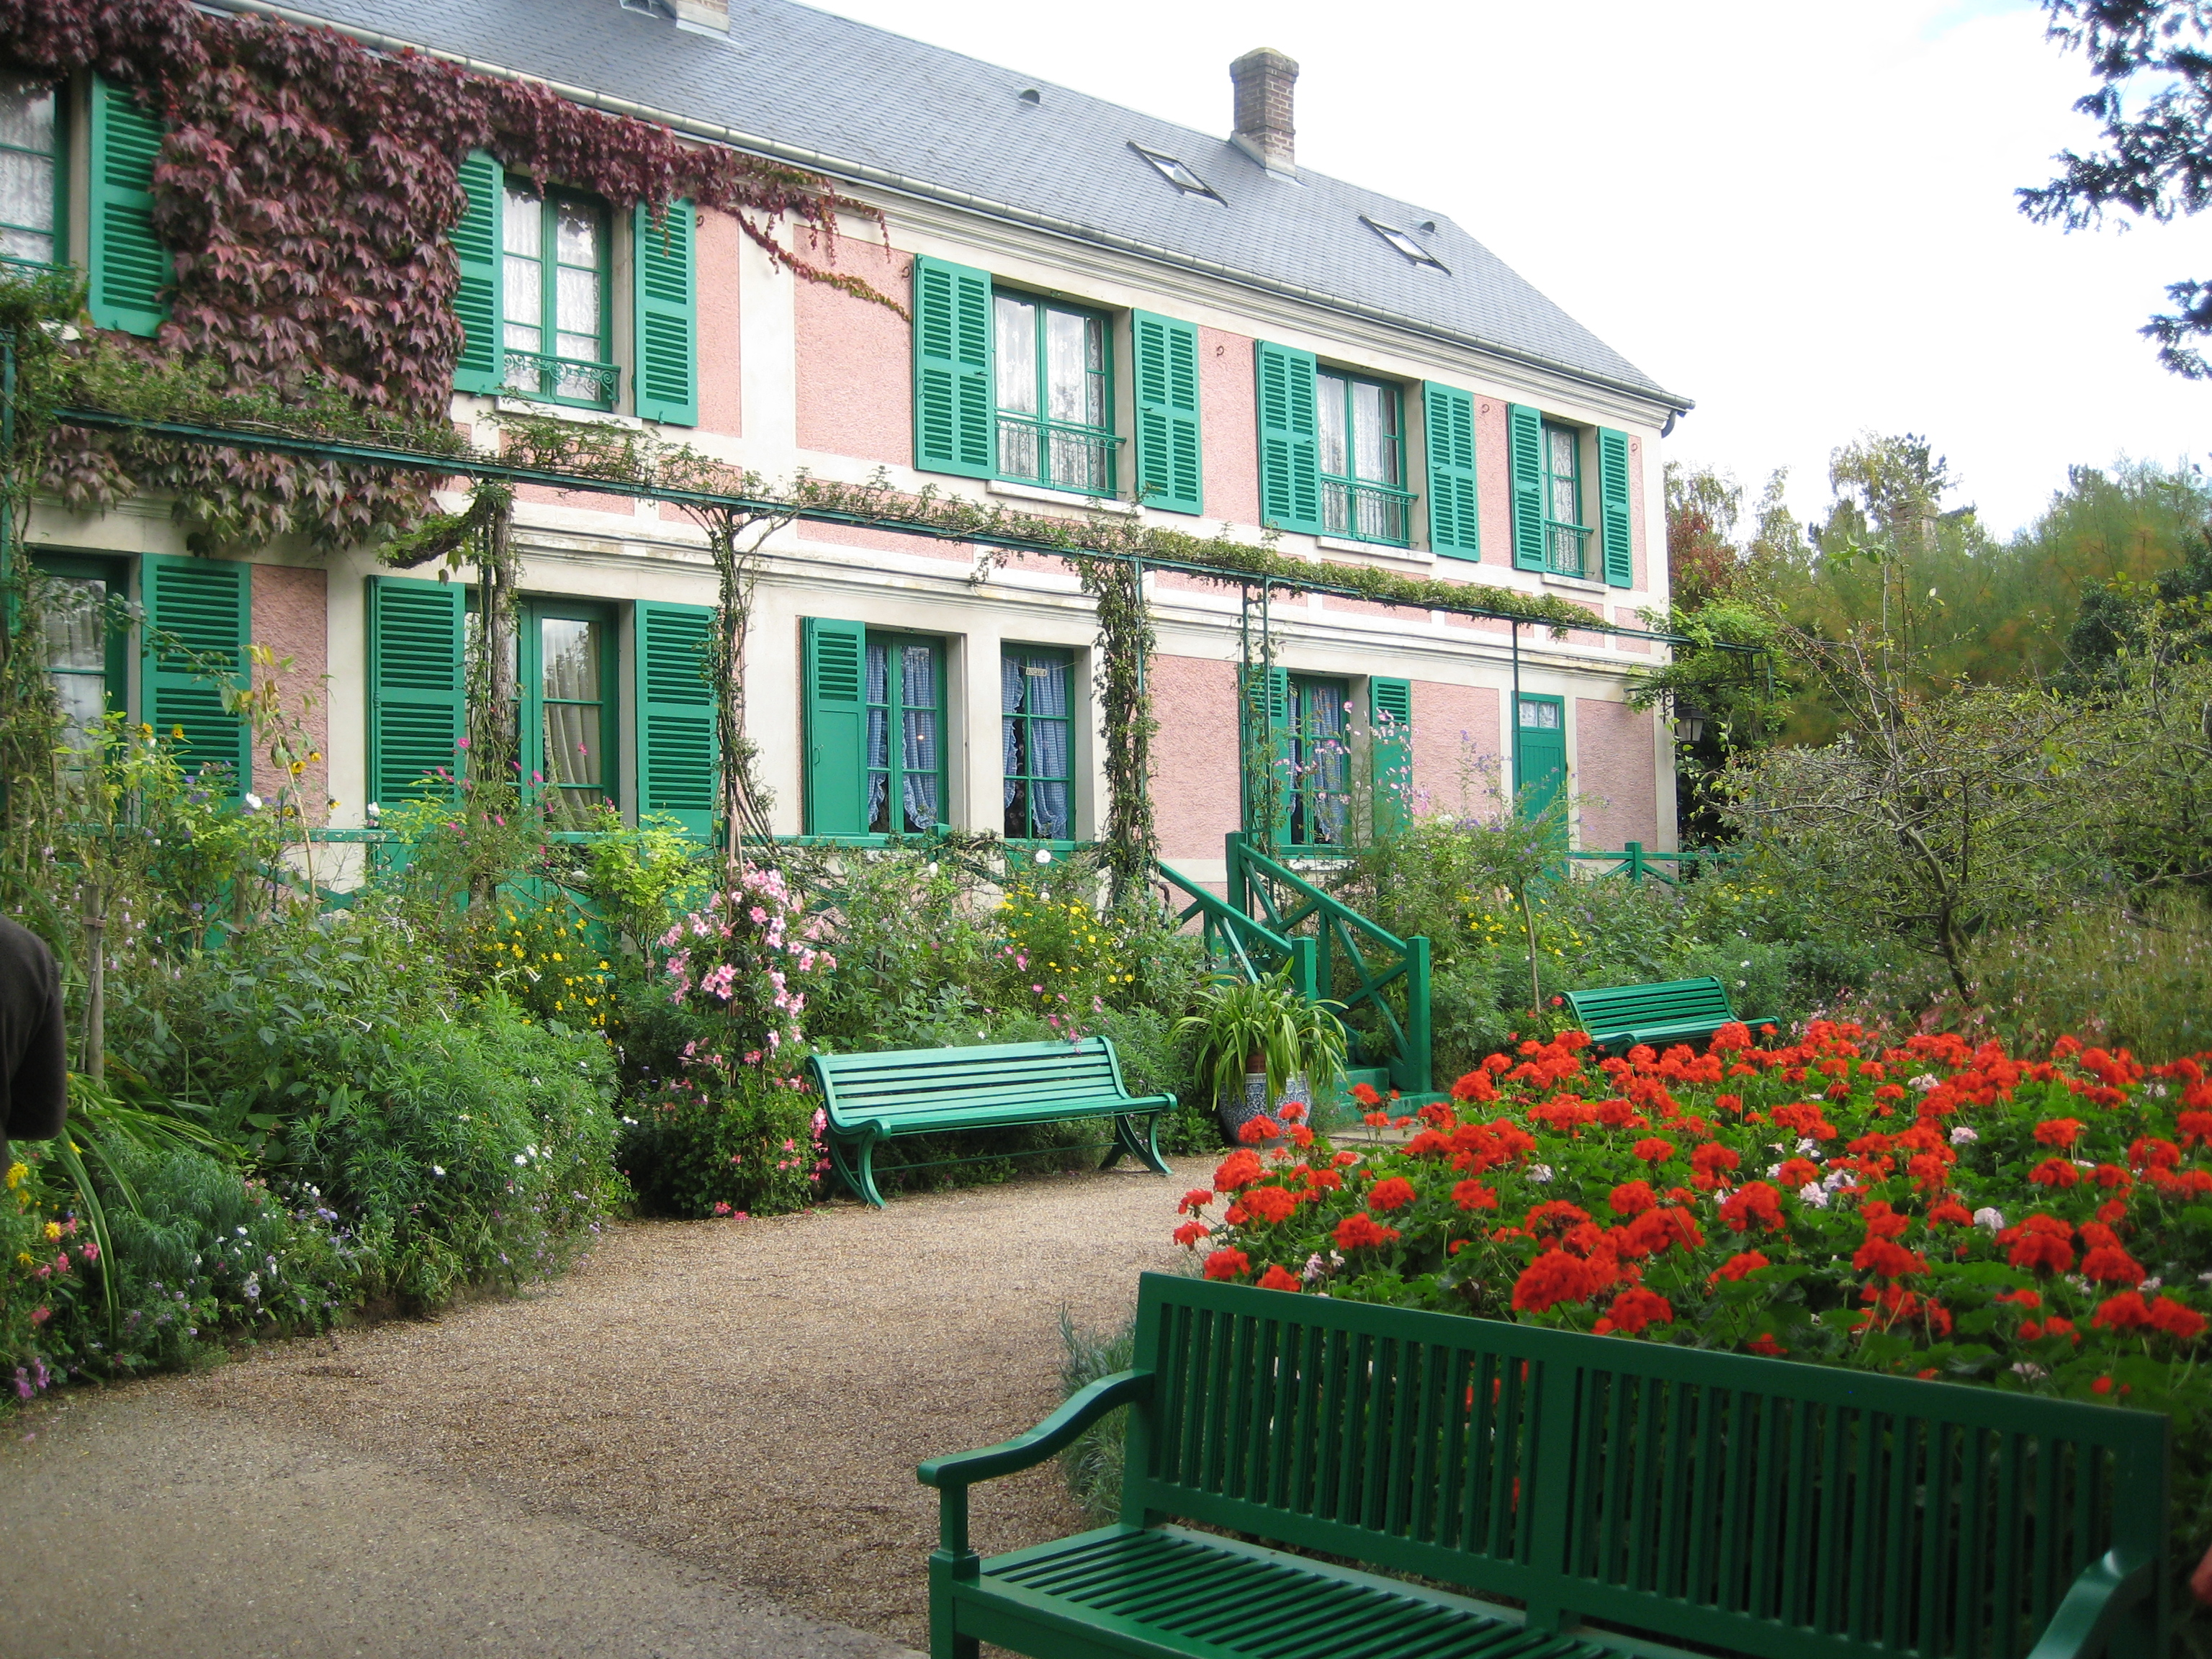 Claude monet s home and garden at giverny the france project for Monet home